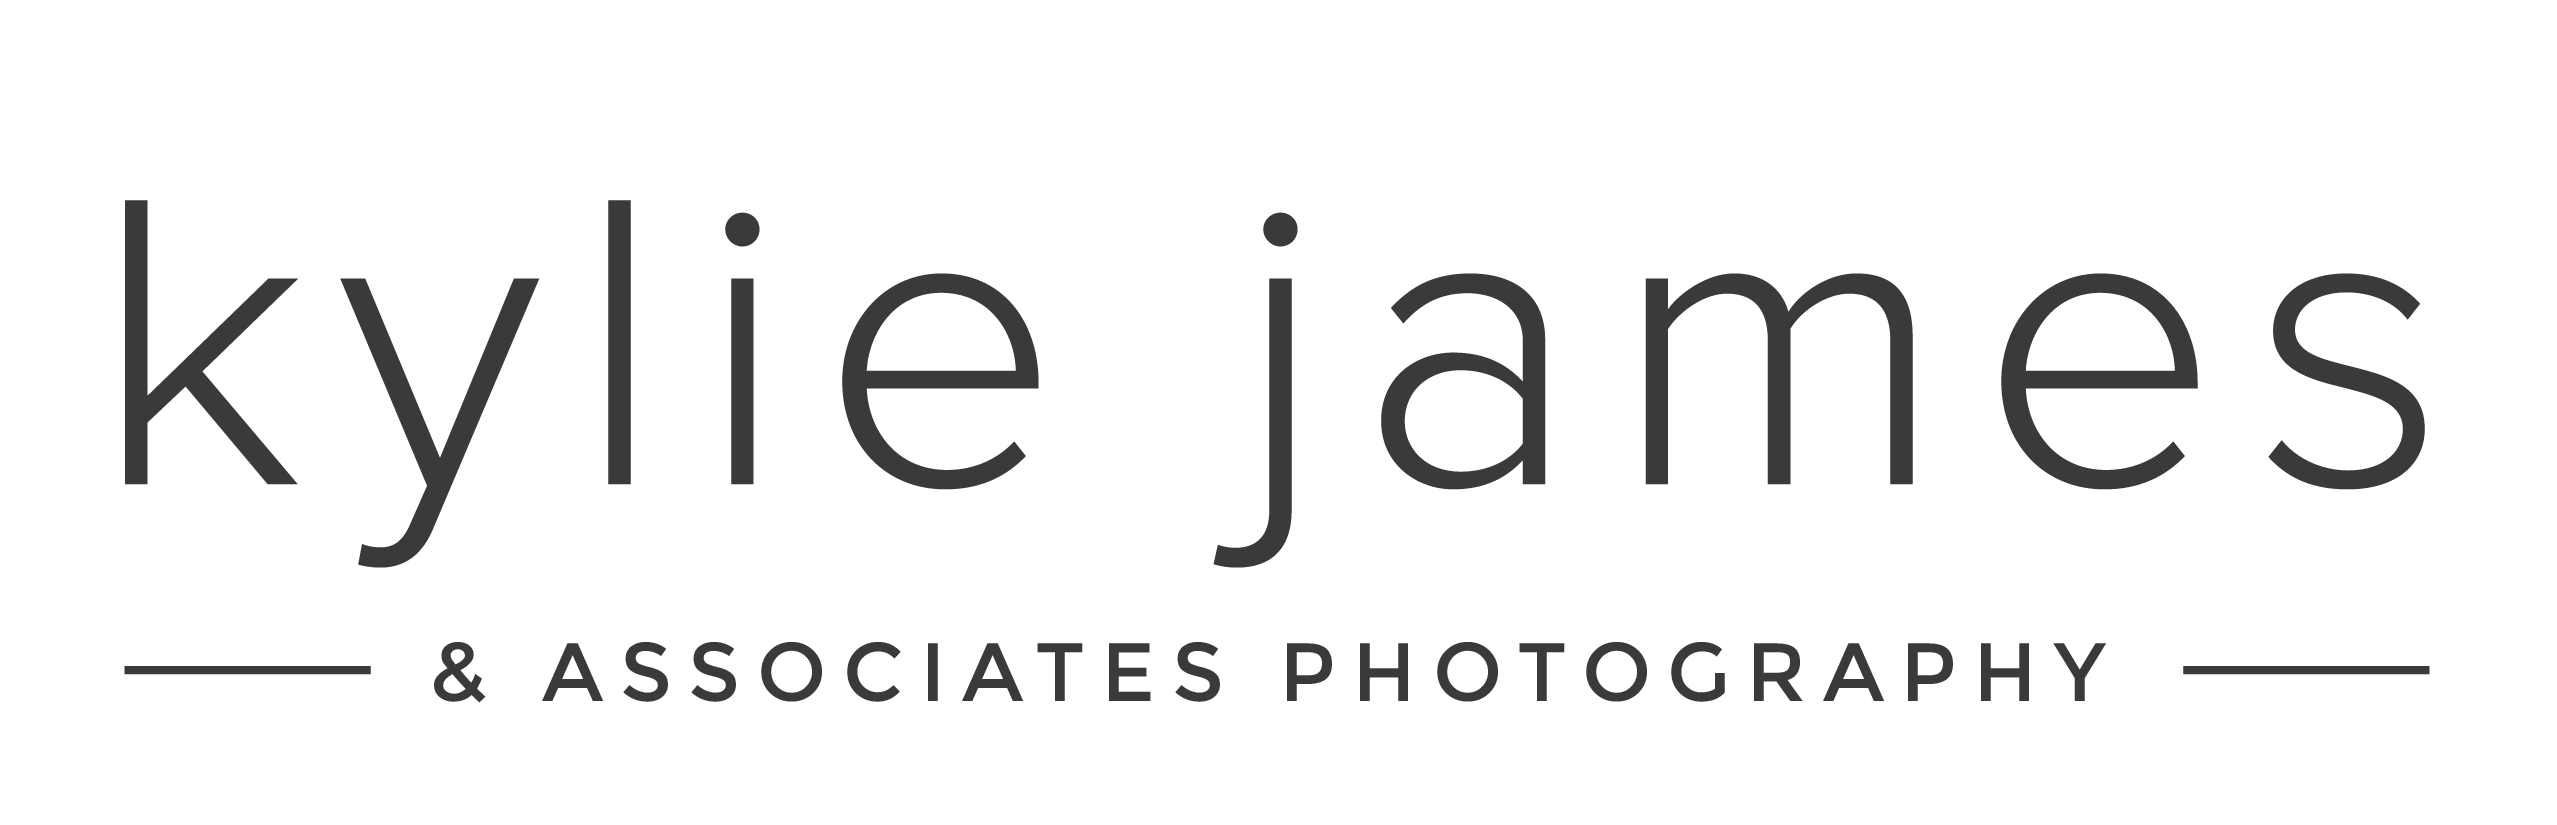 Kylie James Photography Logo